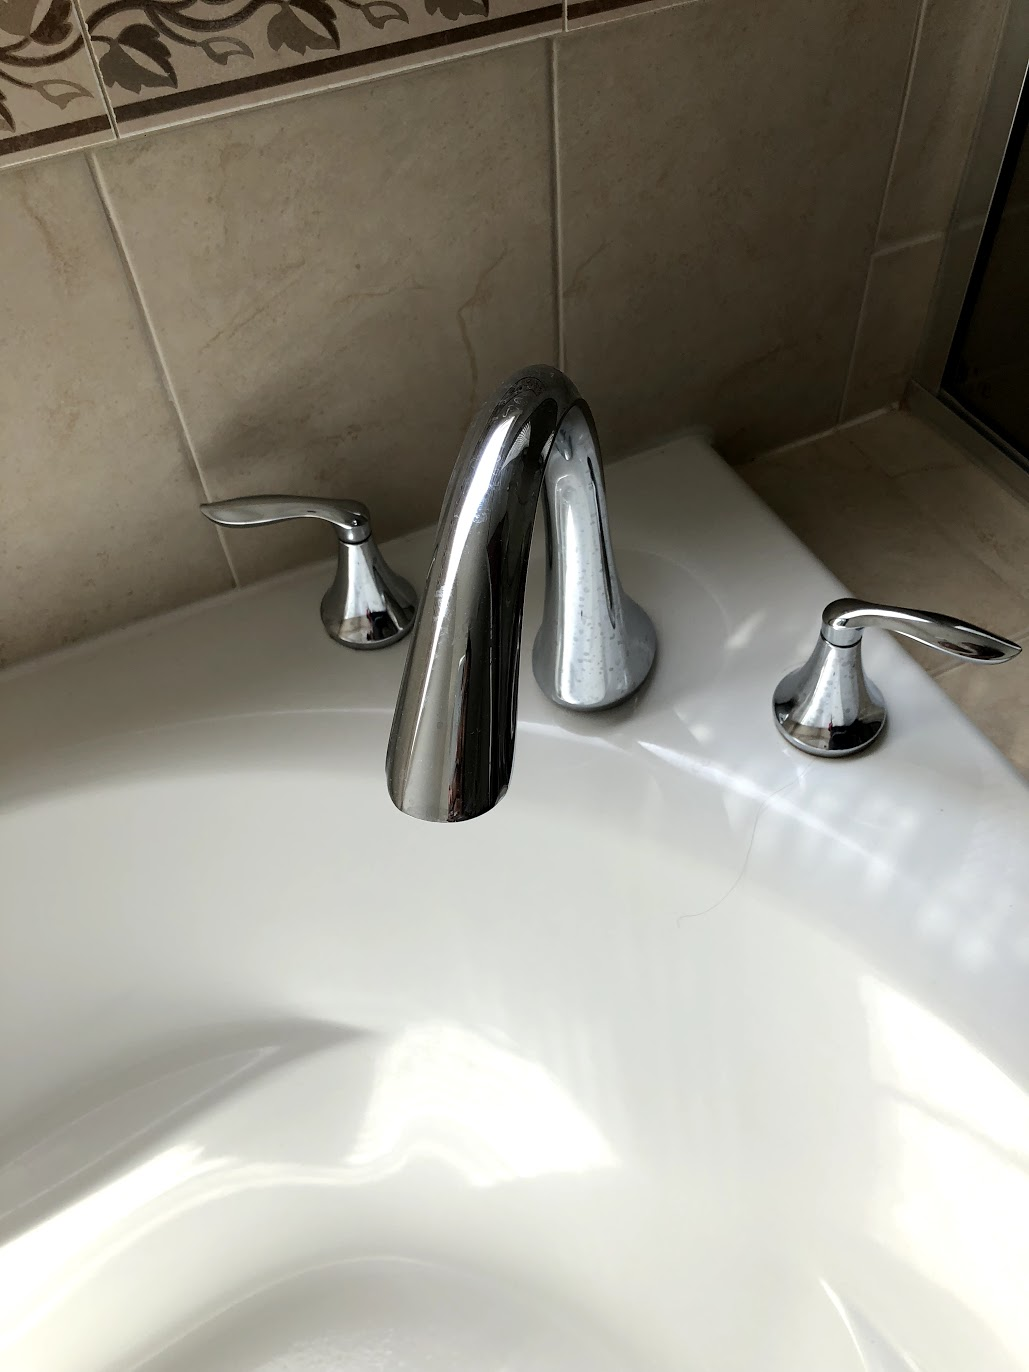 no hot water in only one bath tub